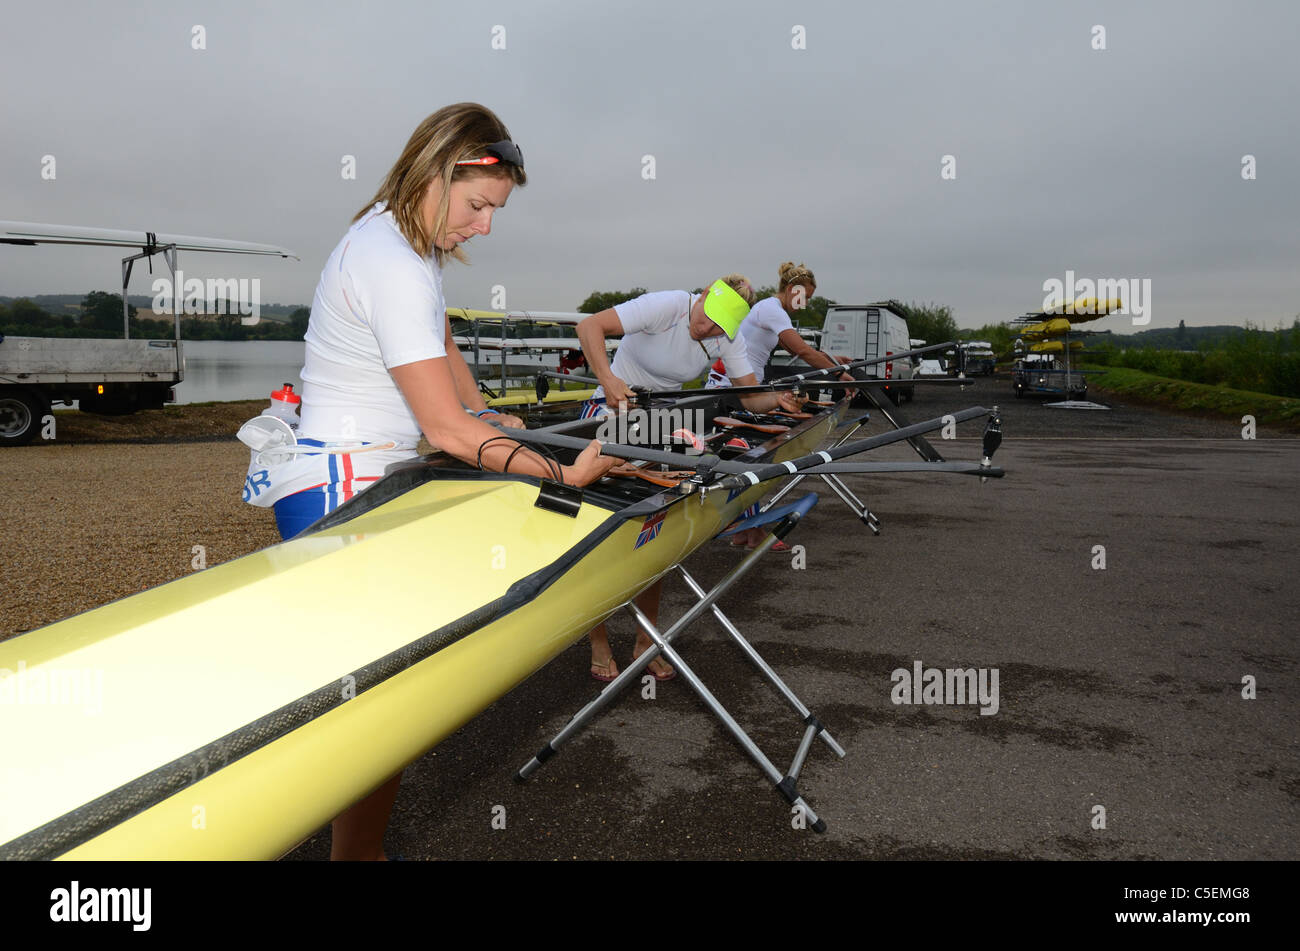 GBR rowing team  at  Redgrave Pinsent Rowing Lake and Sherriff Boathouse - Stock Image